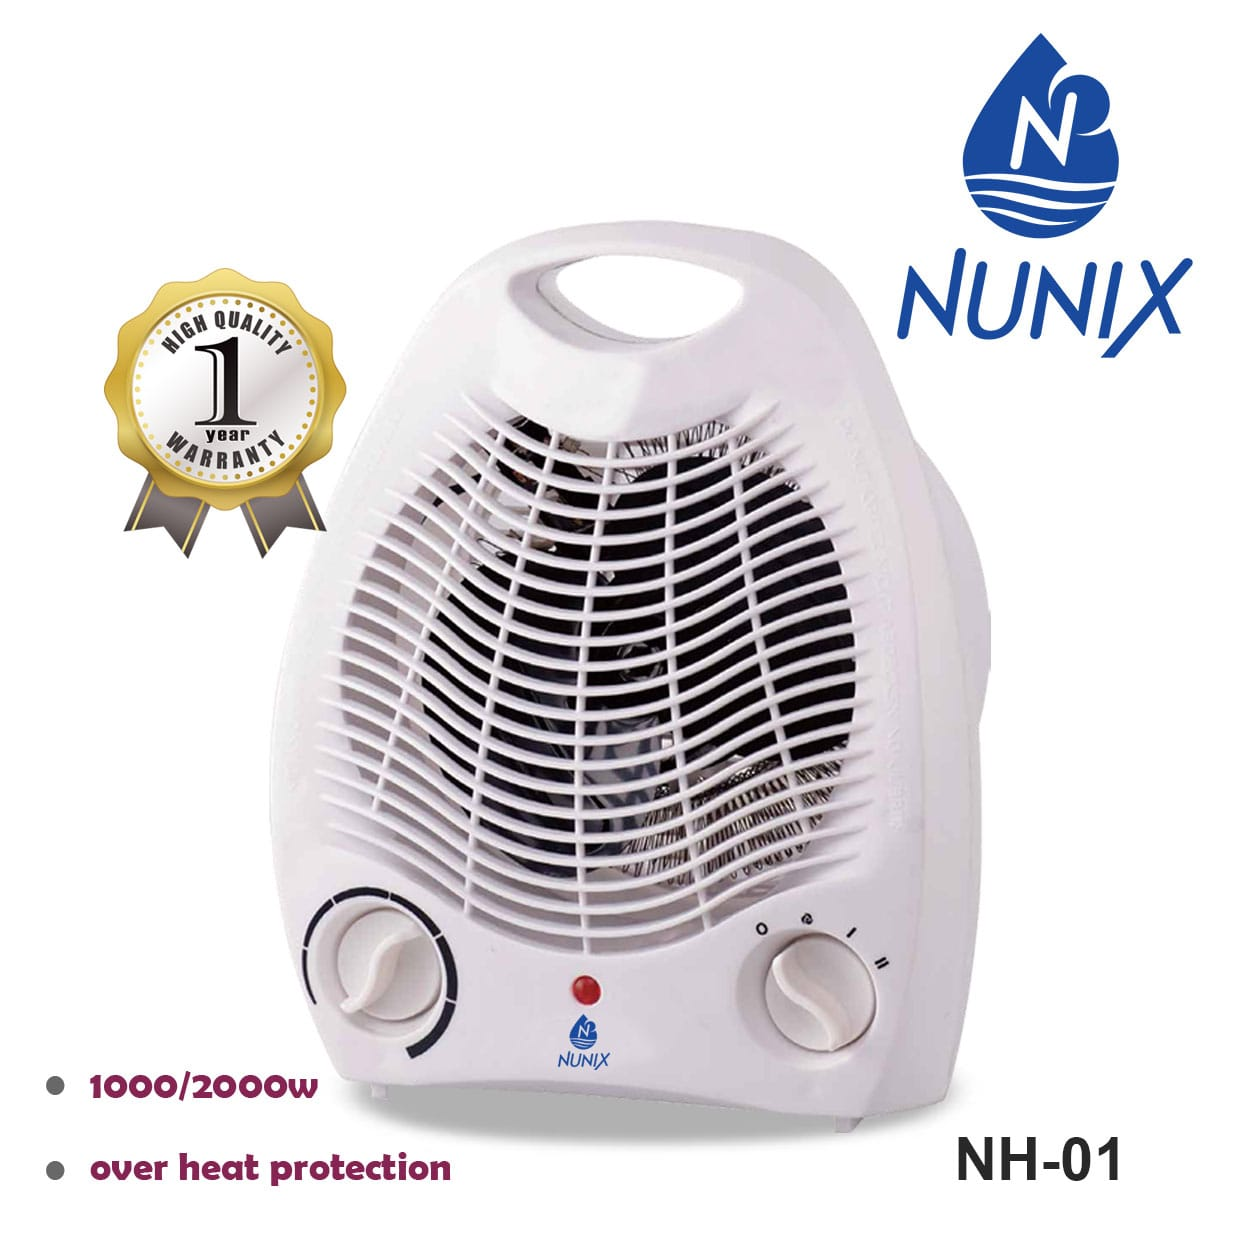 Nunix Portable Fan Room Heater- Perfect For Cold Seasons